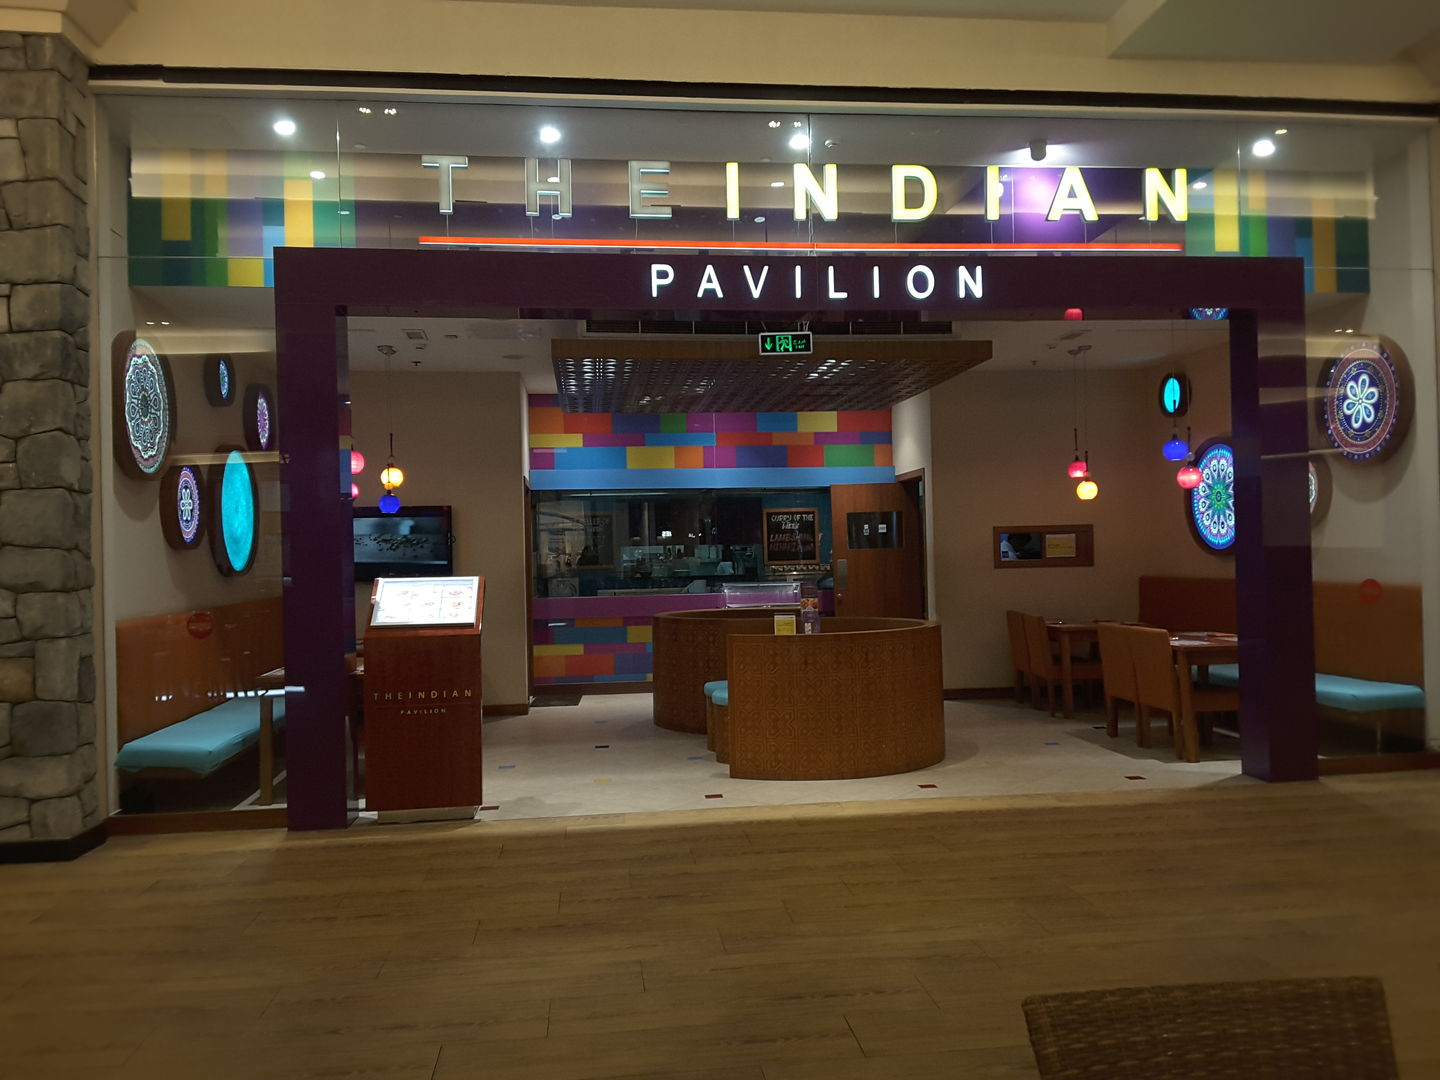 HiDubai-business-indian-pavilion-restaurant-food-beverage-restaurants-bars-al-barsha-1-dubai-2